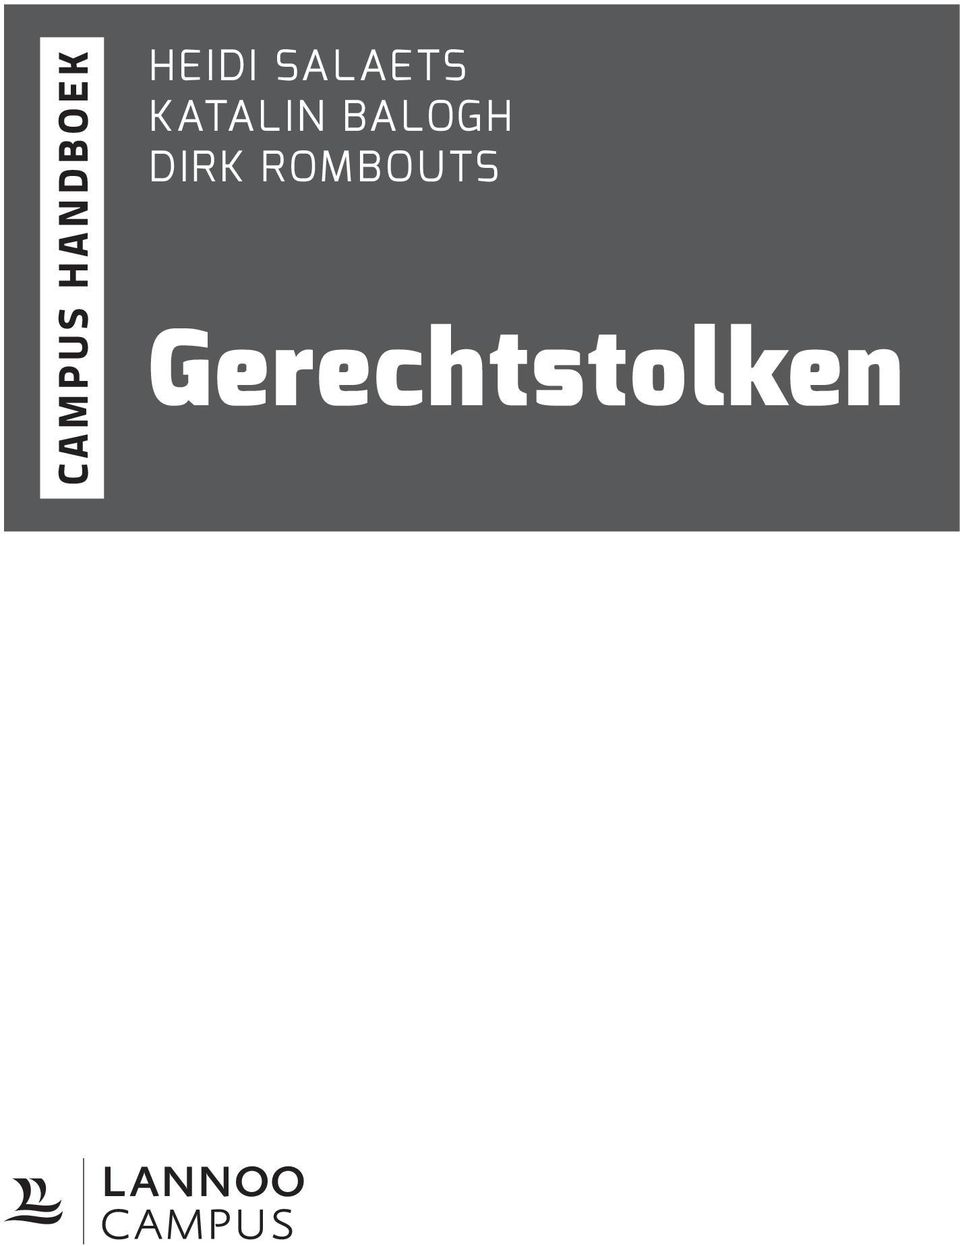 Dirk Rombouts